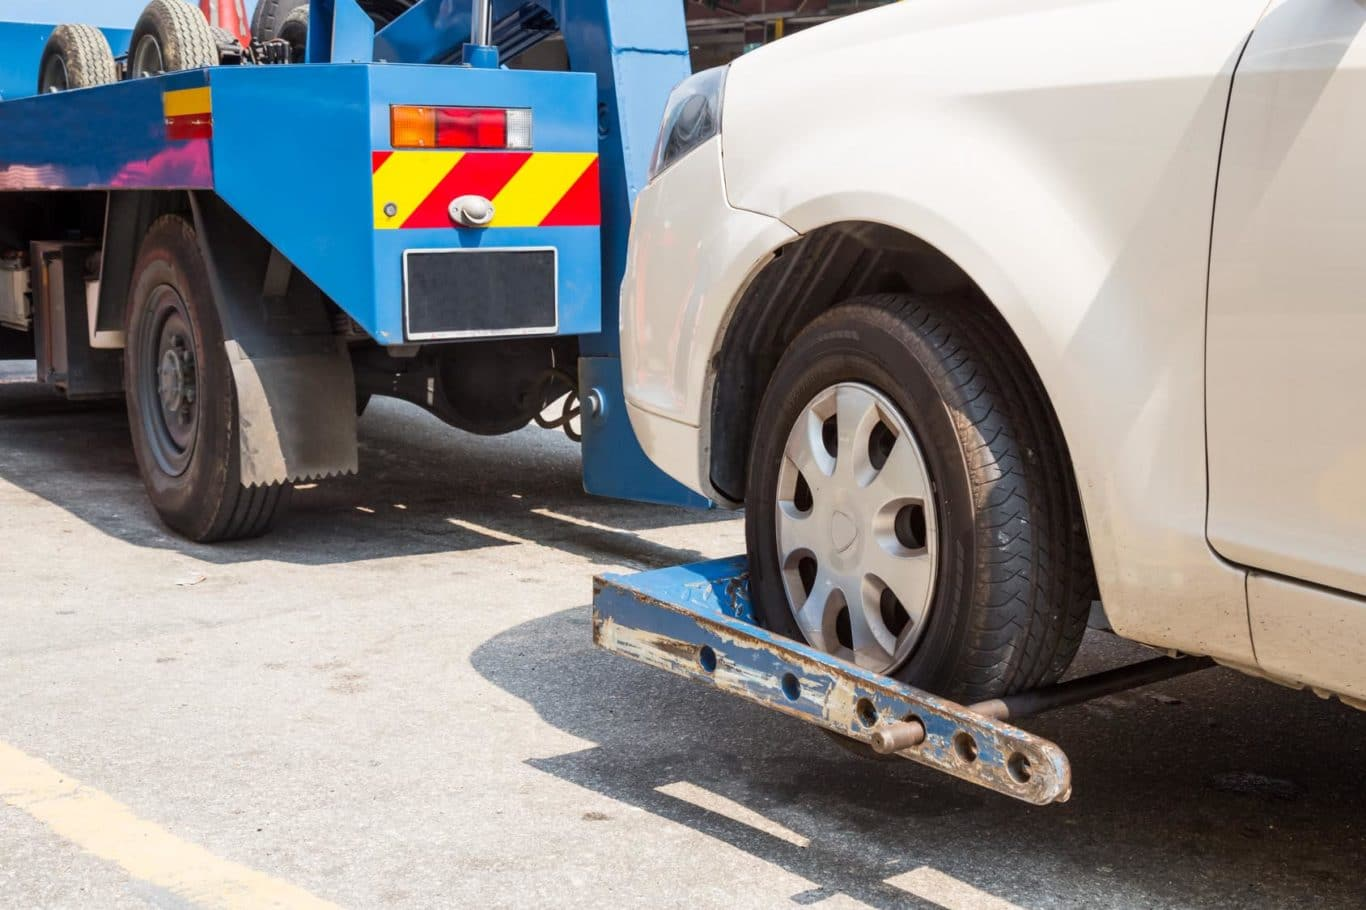 Leopardstown expert Car Towing services